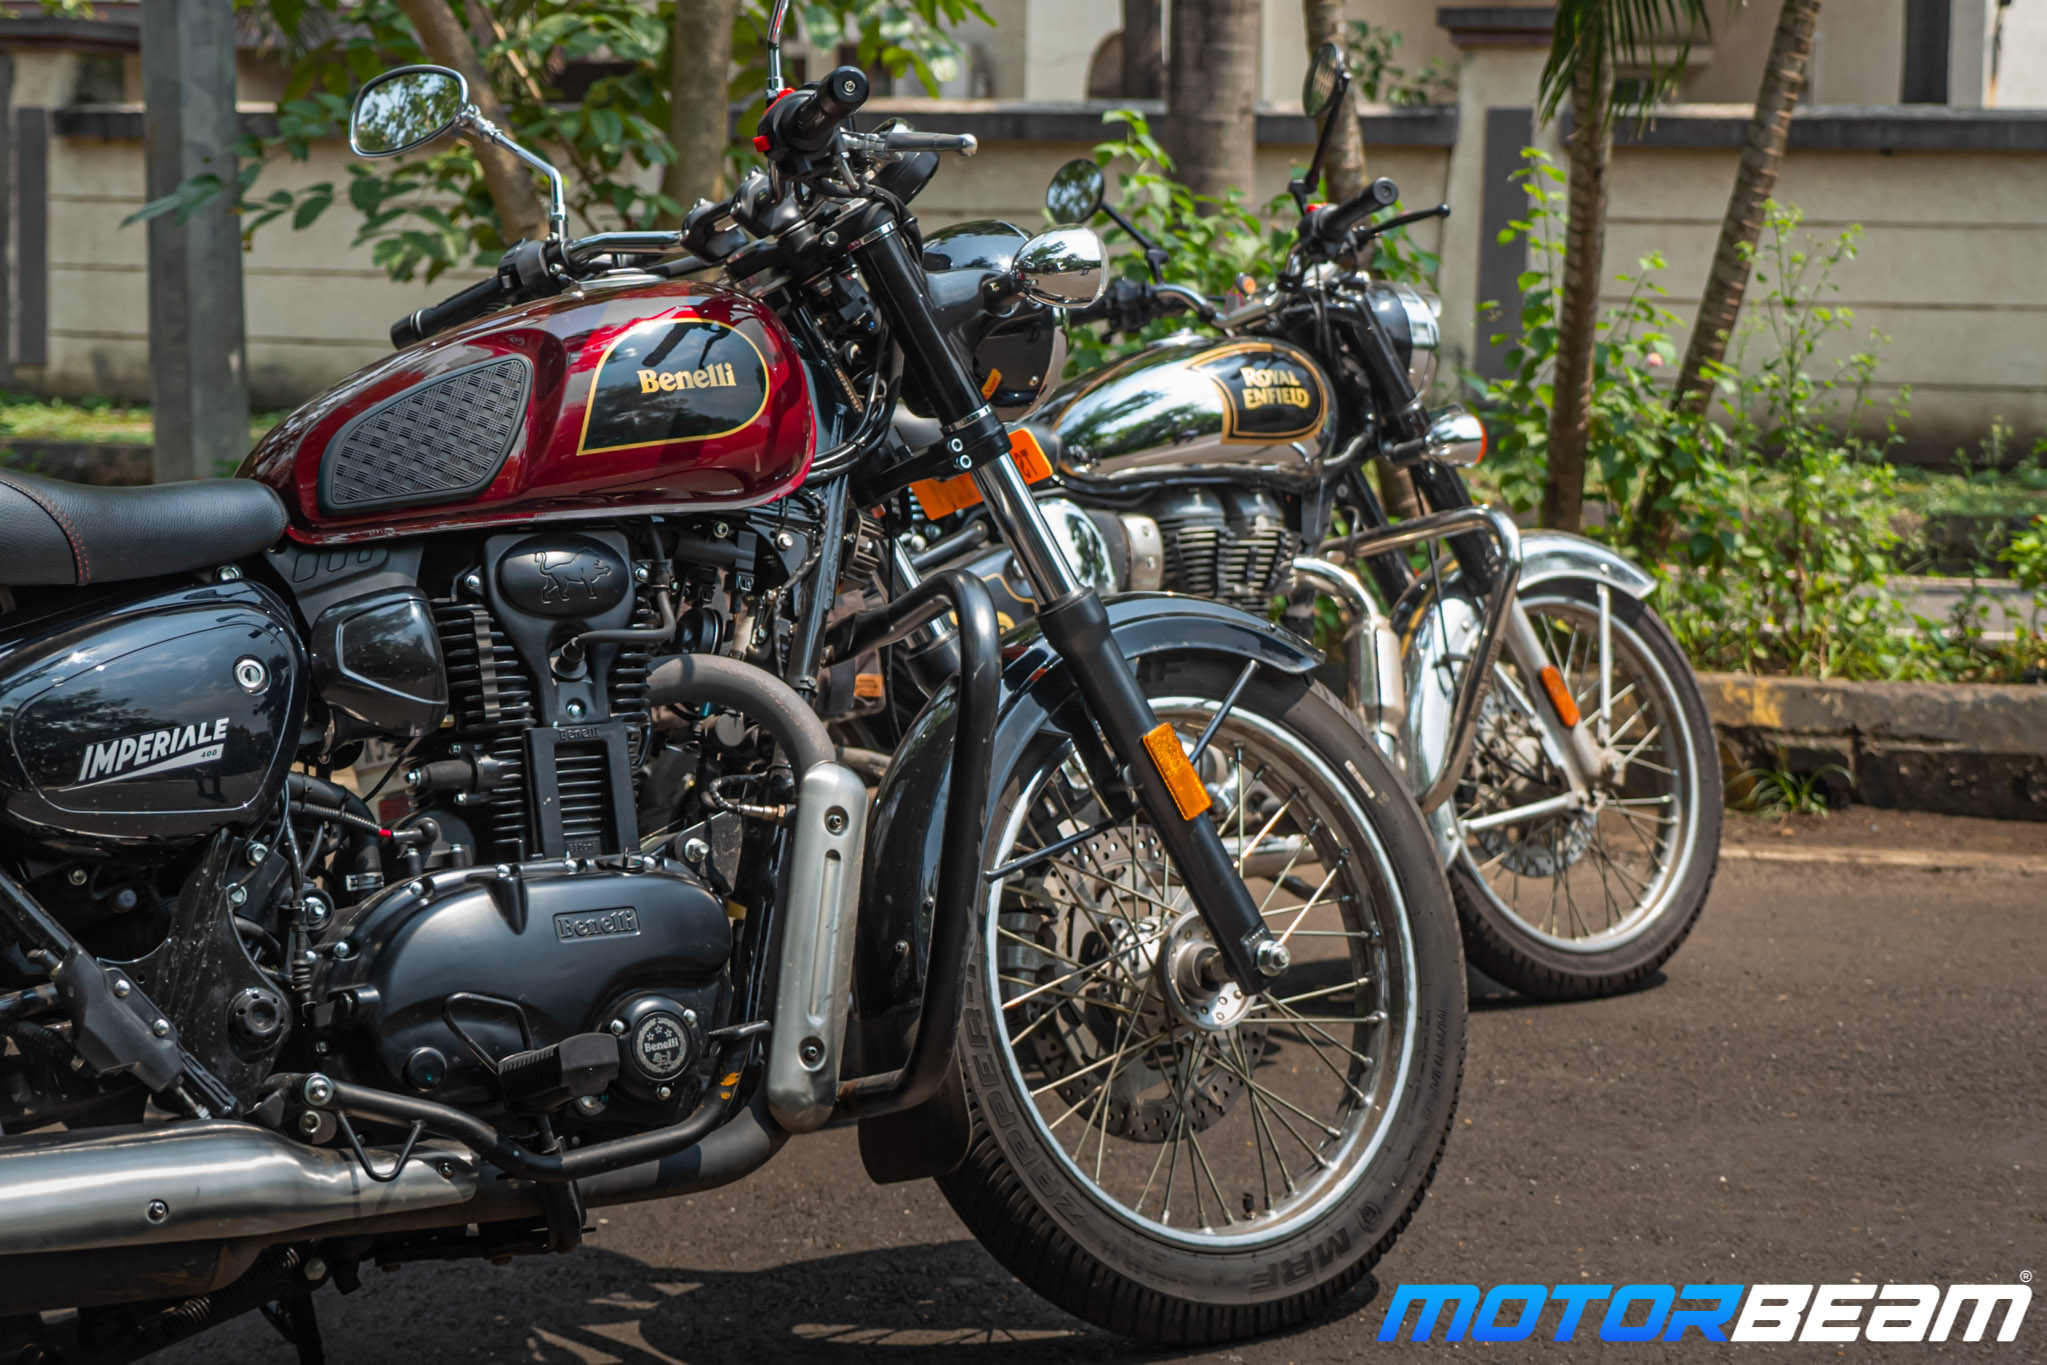 Benelli Imperiale 400 vs Royal Enfield Classic 350 Comparison Review 16